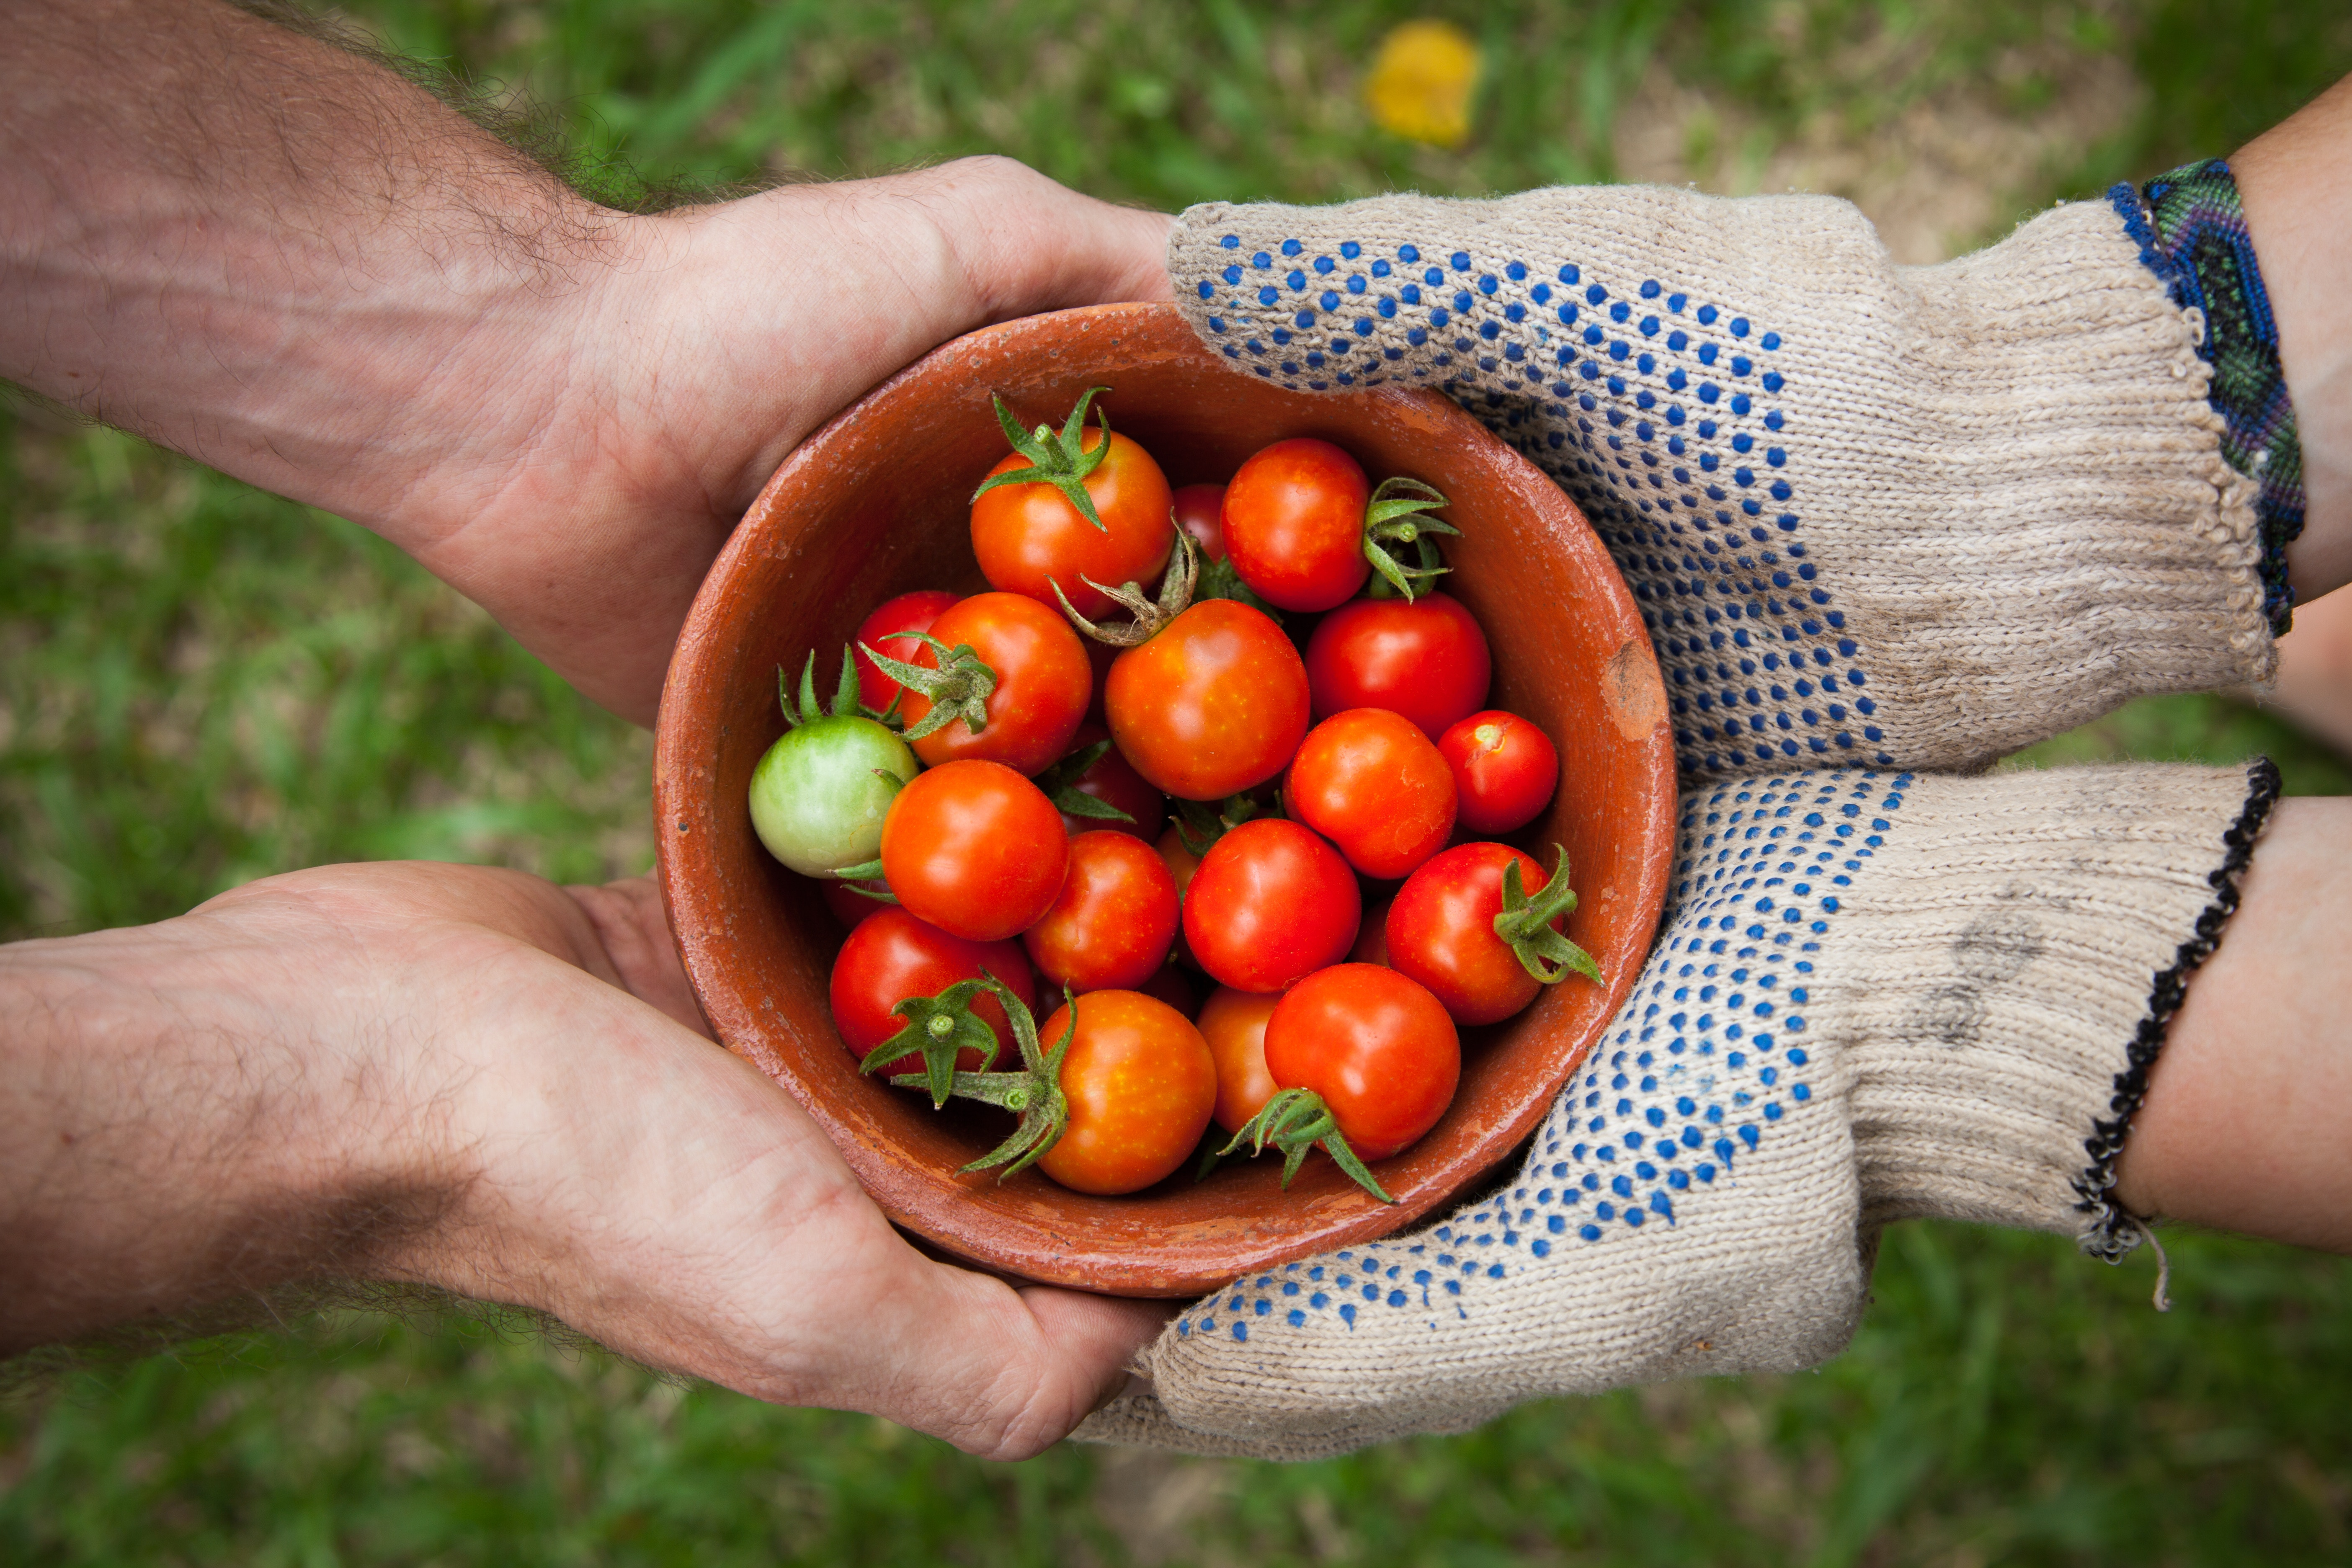 Hands and Tomatoes